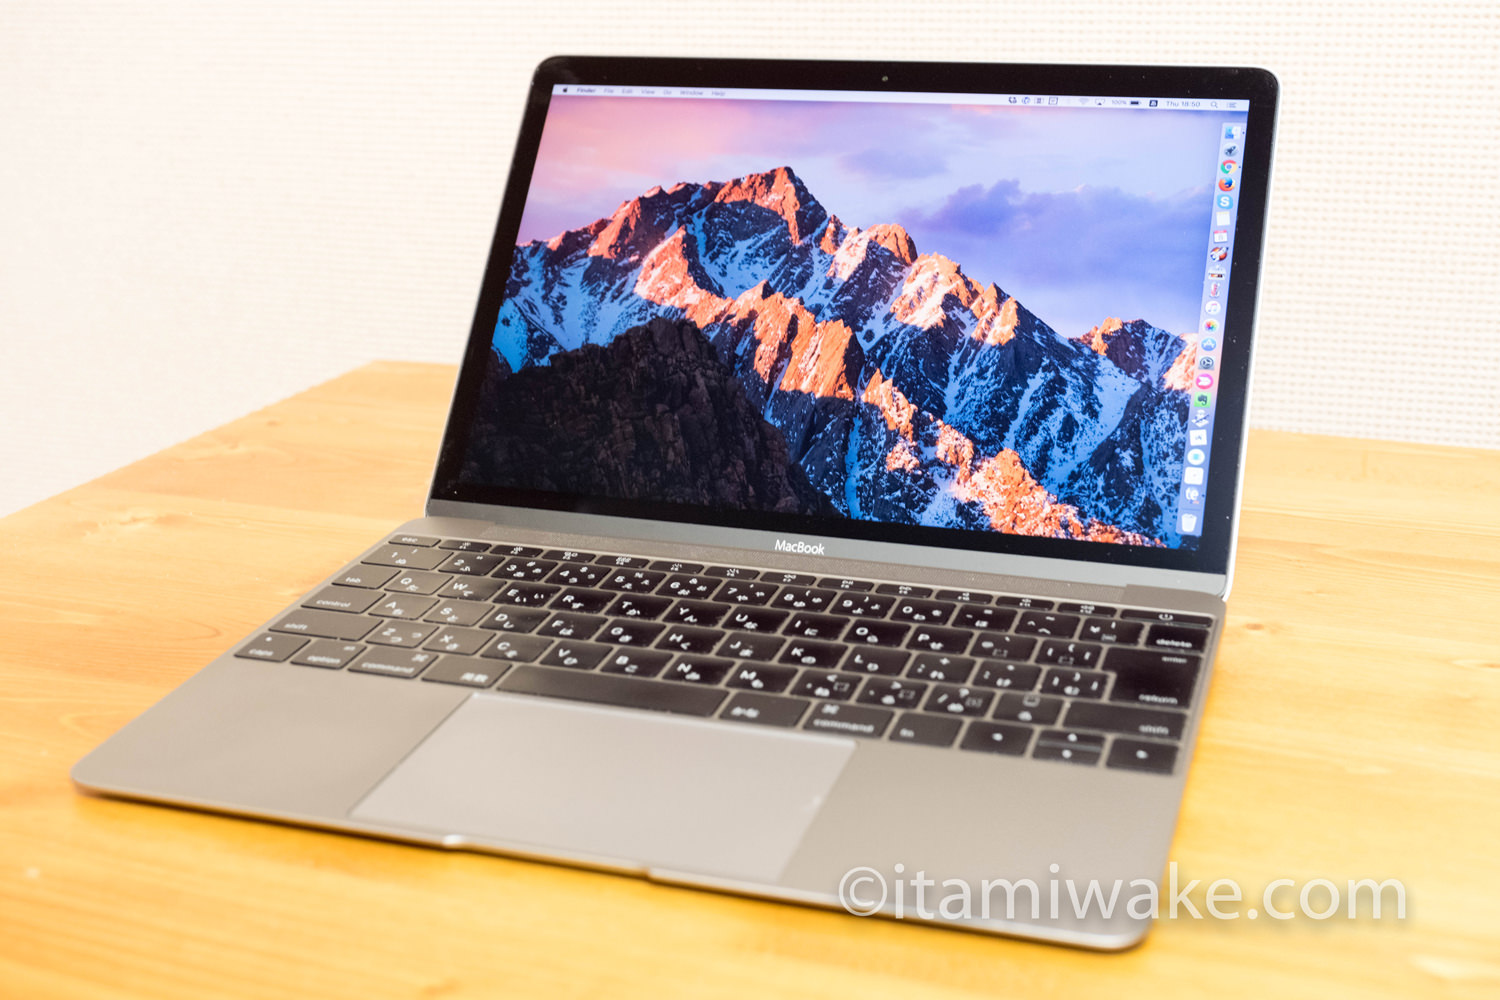 how to connect mixer to macbook laptop